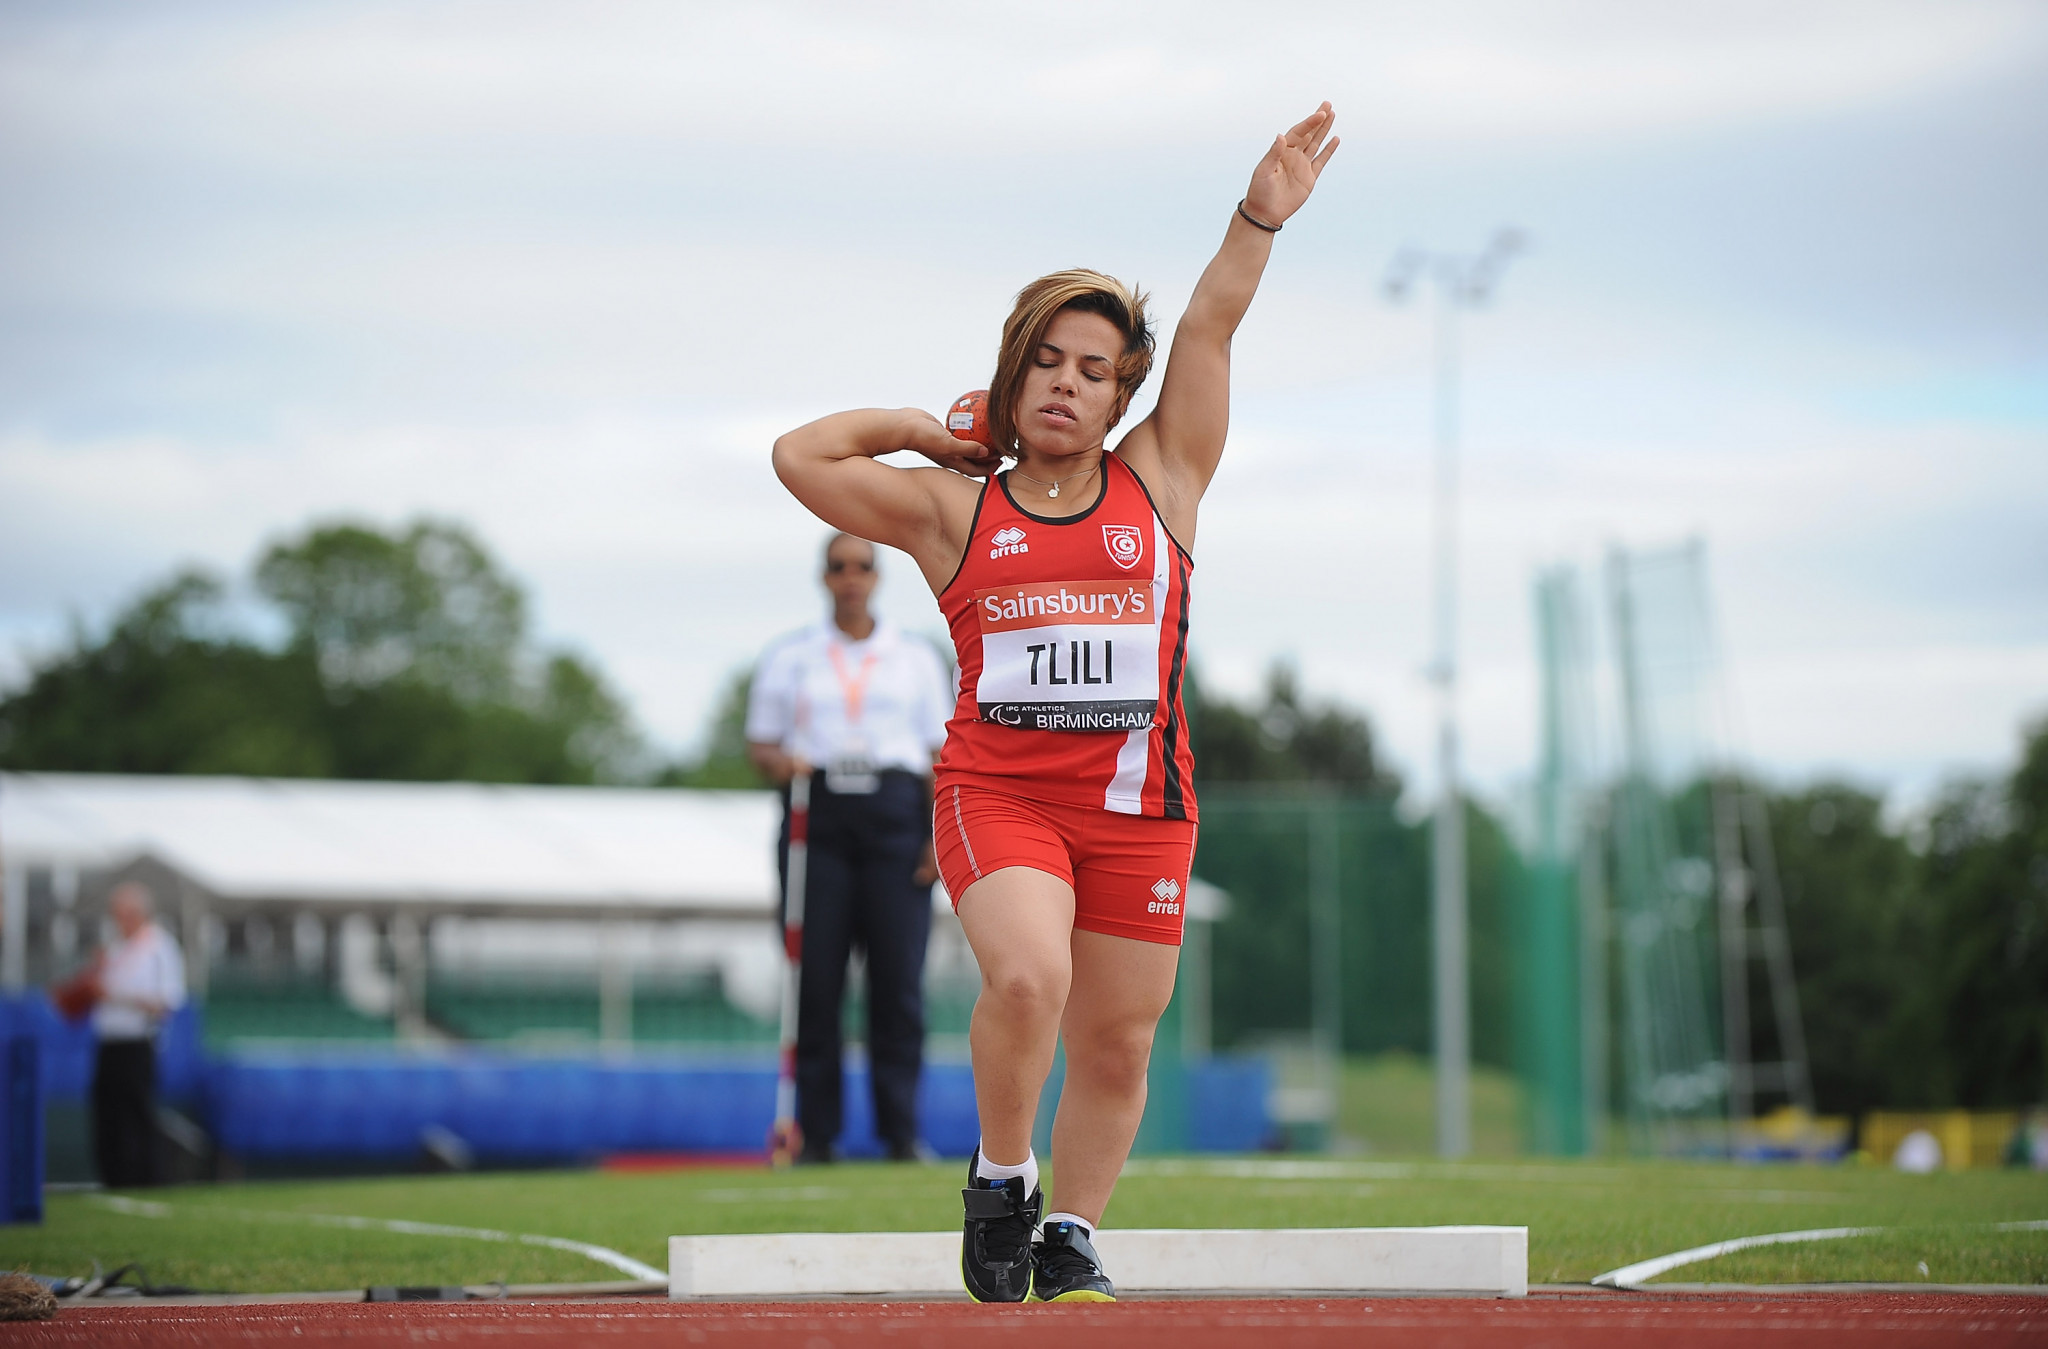 Raoua Tlili of Tunisia claimed her second gold medal in as many days at the World Para Athletics Grand Prix in Jesolo ©Getty Images